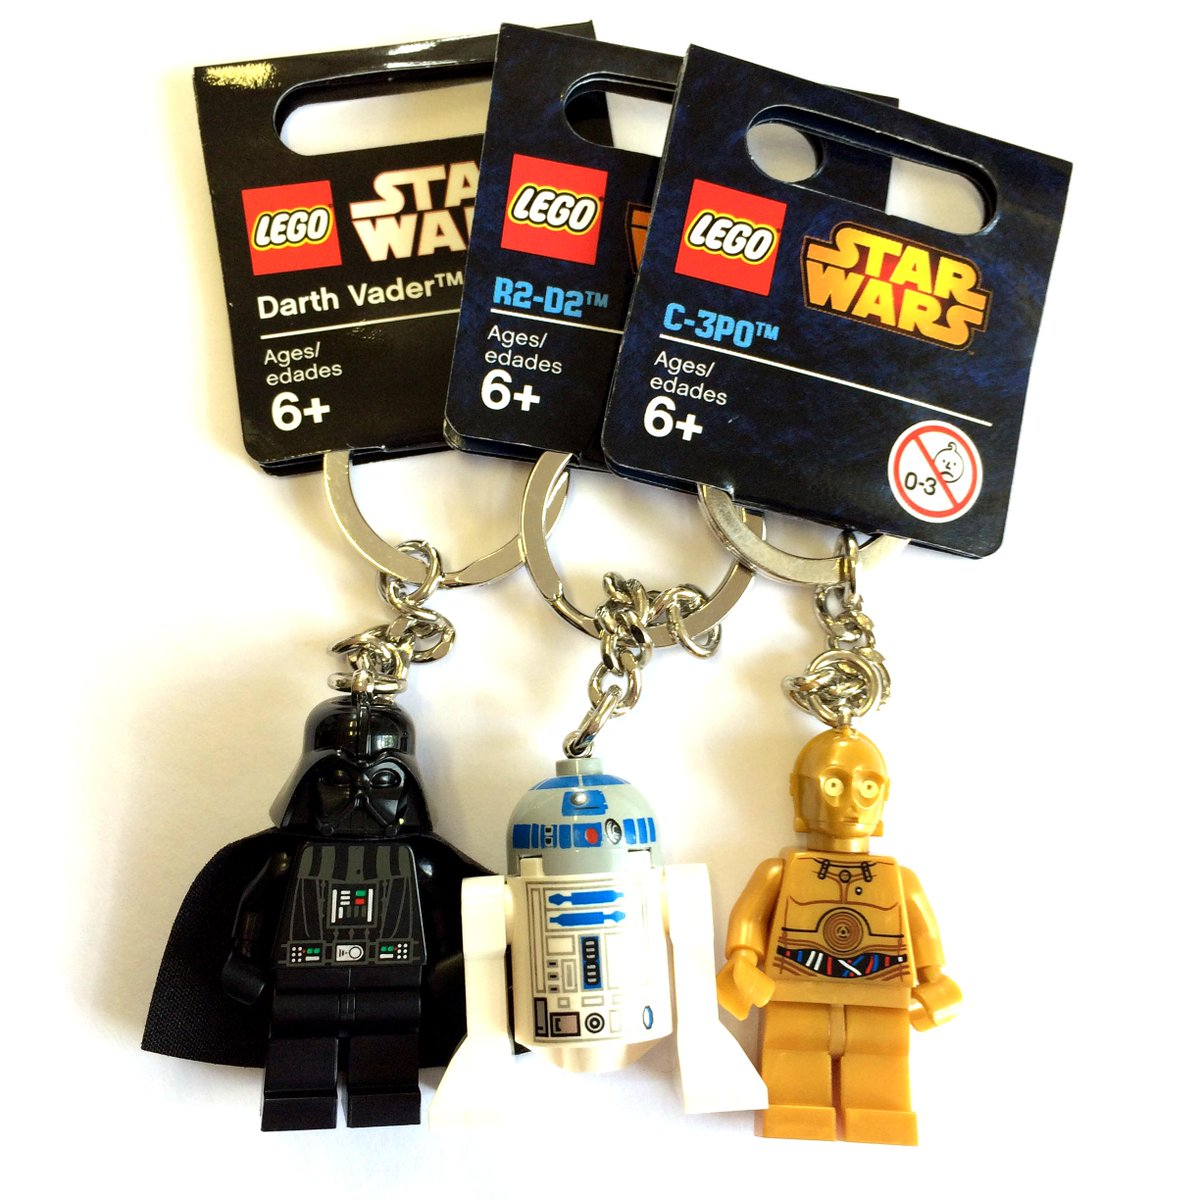 The Force is coming! Follow & RT by 4pm today for a chance to win a #StarWars keyring!  #LEGOLANDStarWars2015 http://t.co/Cz0GrBe1BL